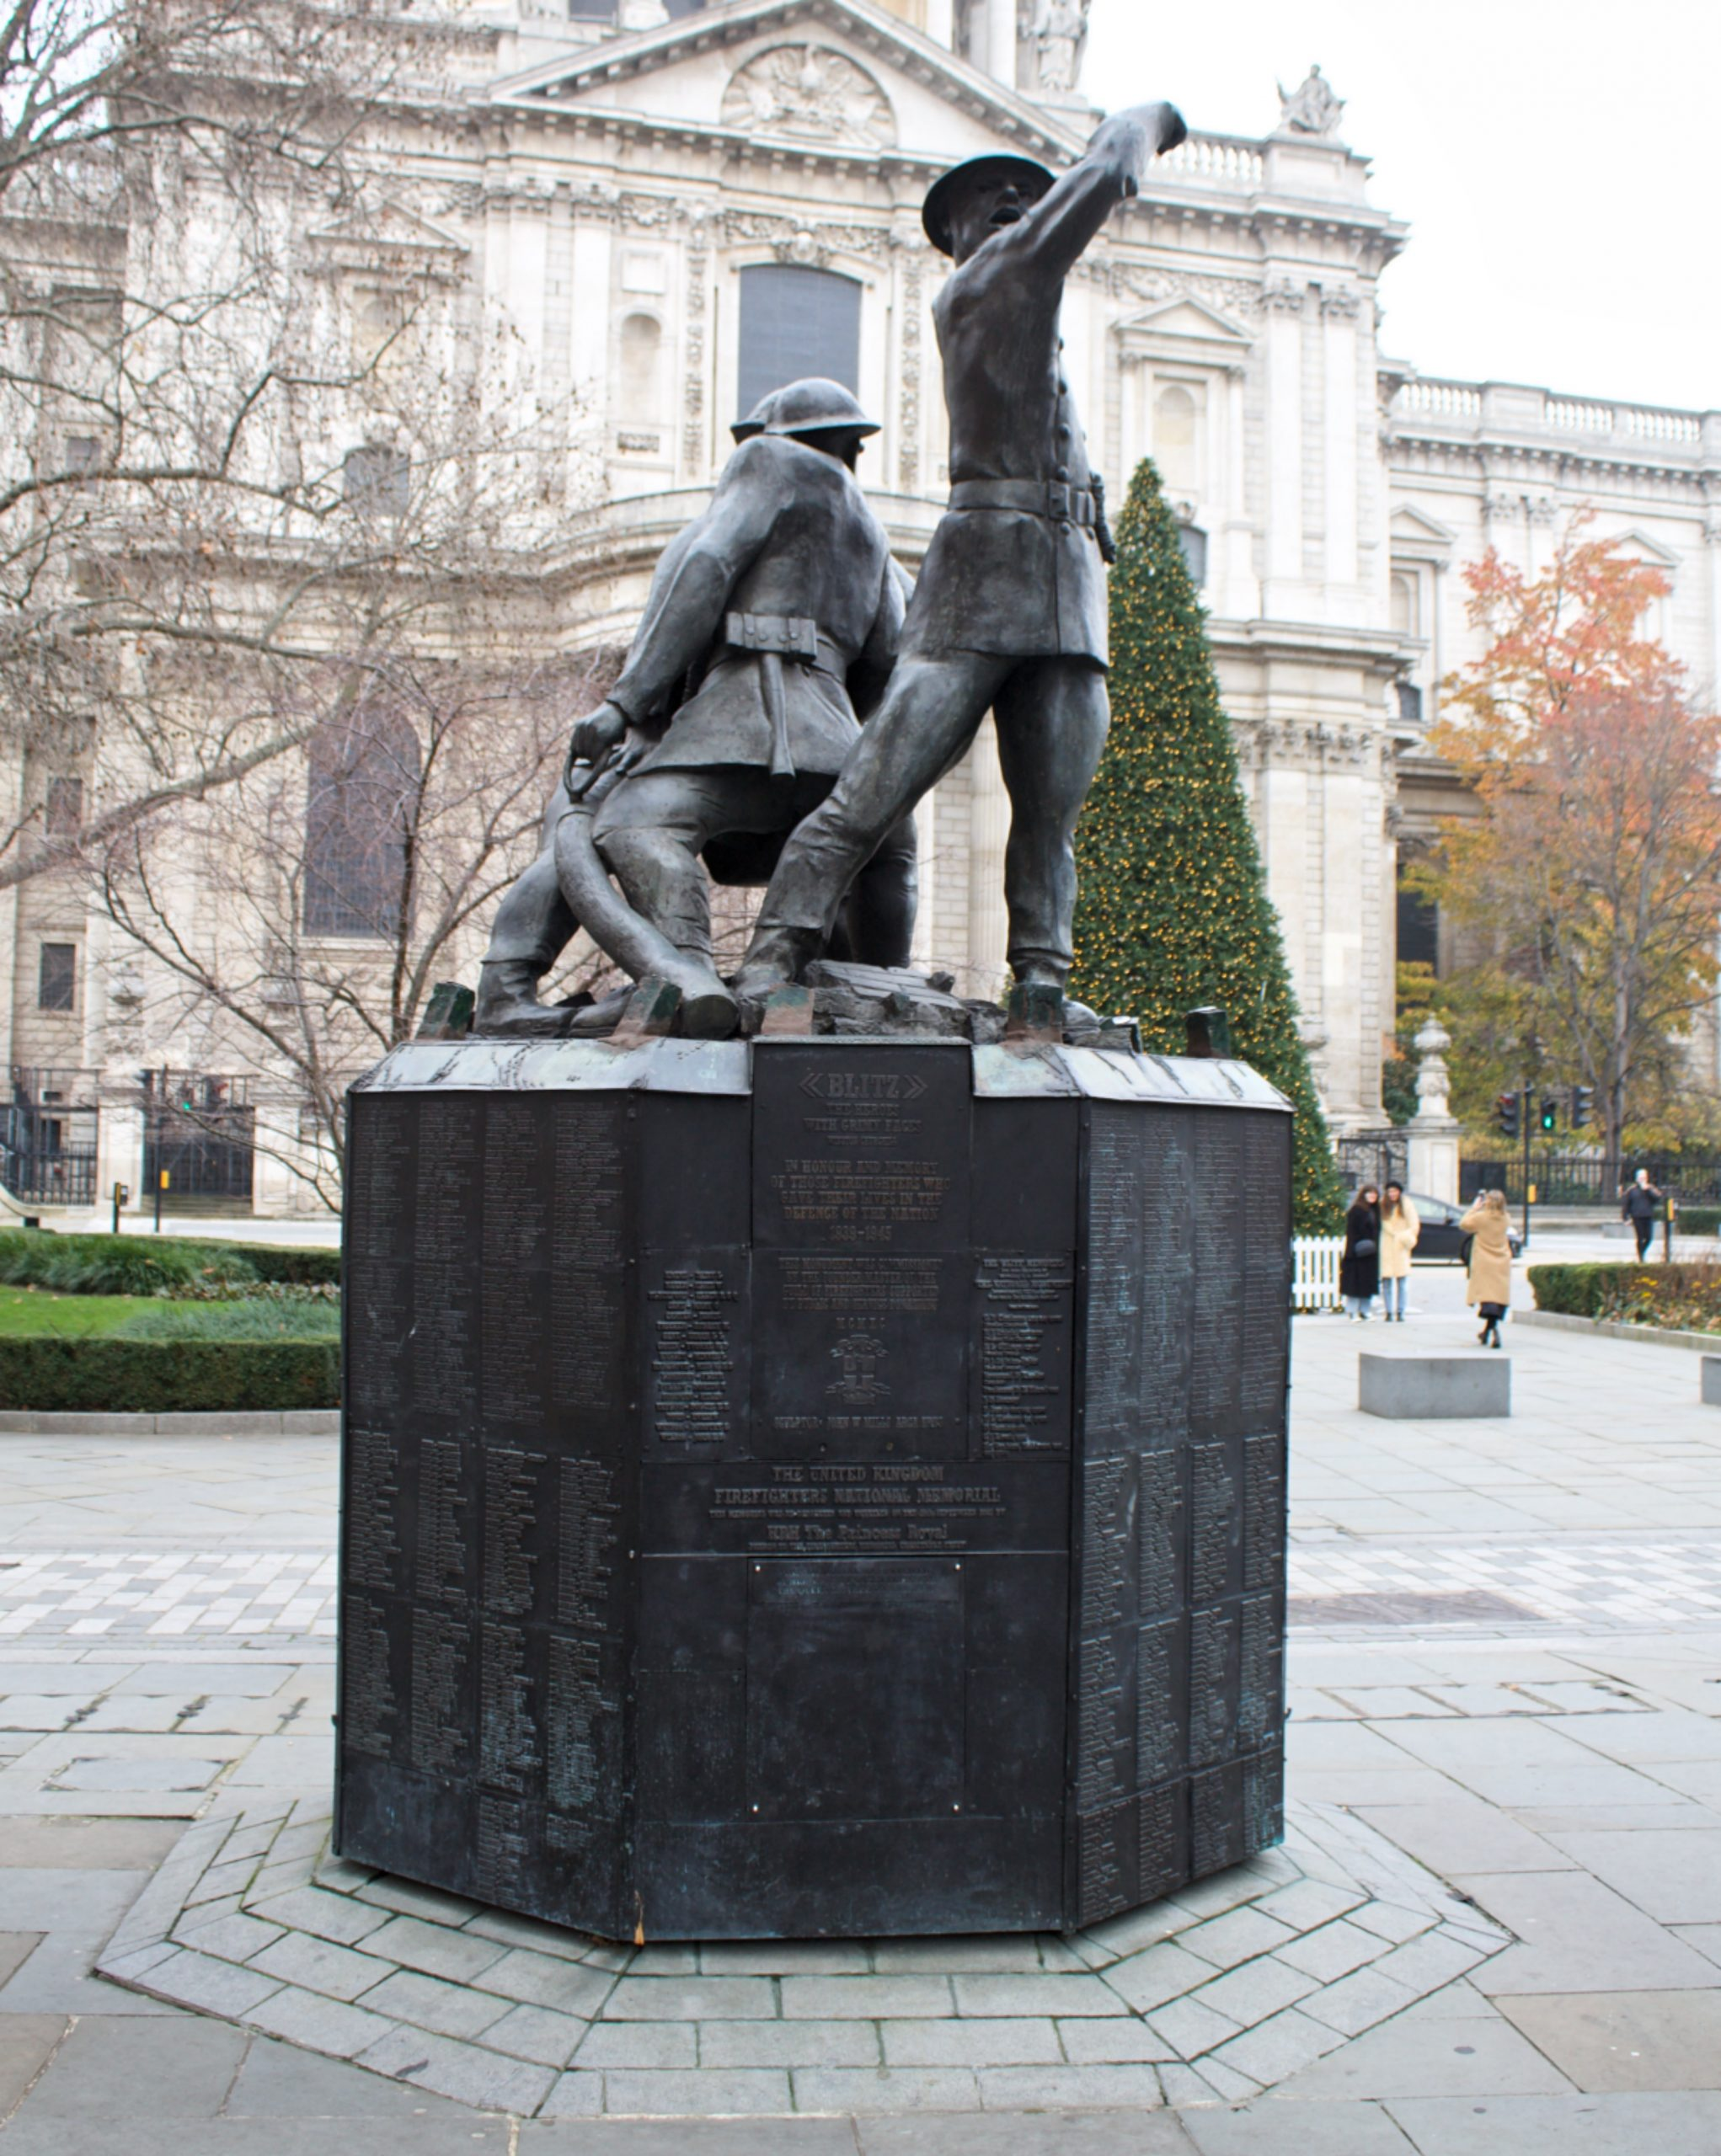 Firefighters' memorial outside St Paul's Cathedral